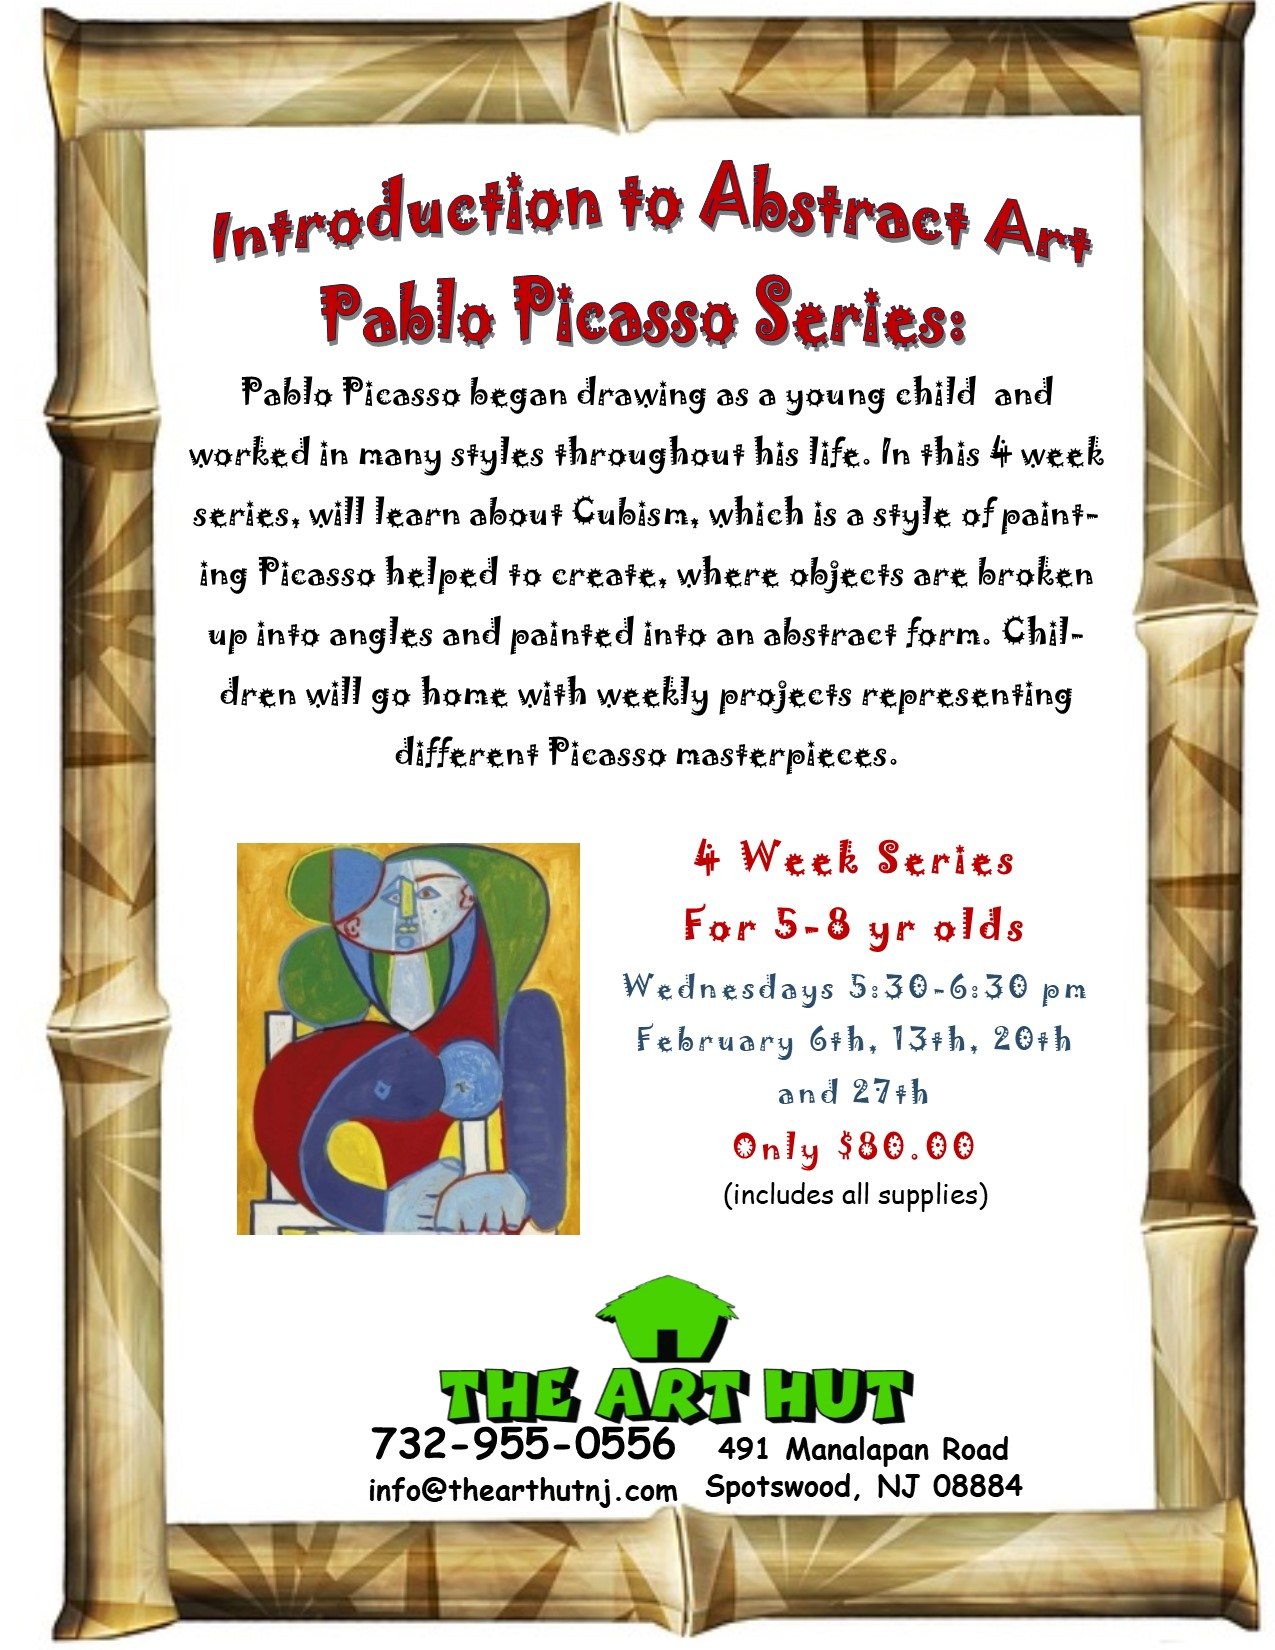 Intro to Abstract Art - Pablo Picasso (Ages 5-8 yrs old) - The Art Hut